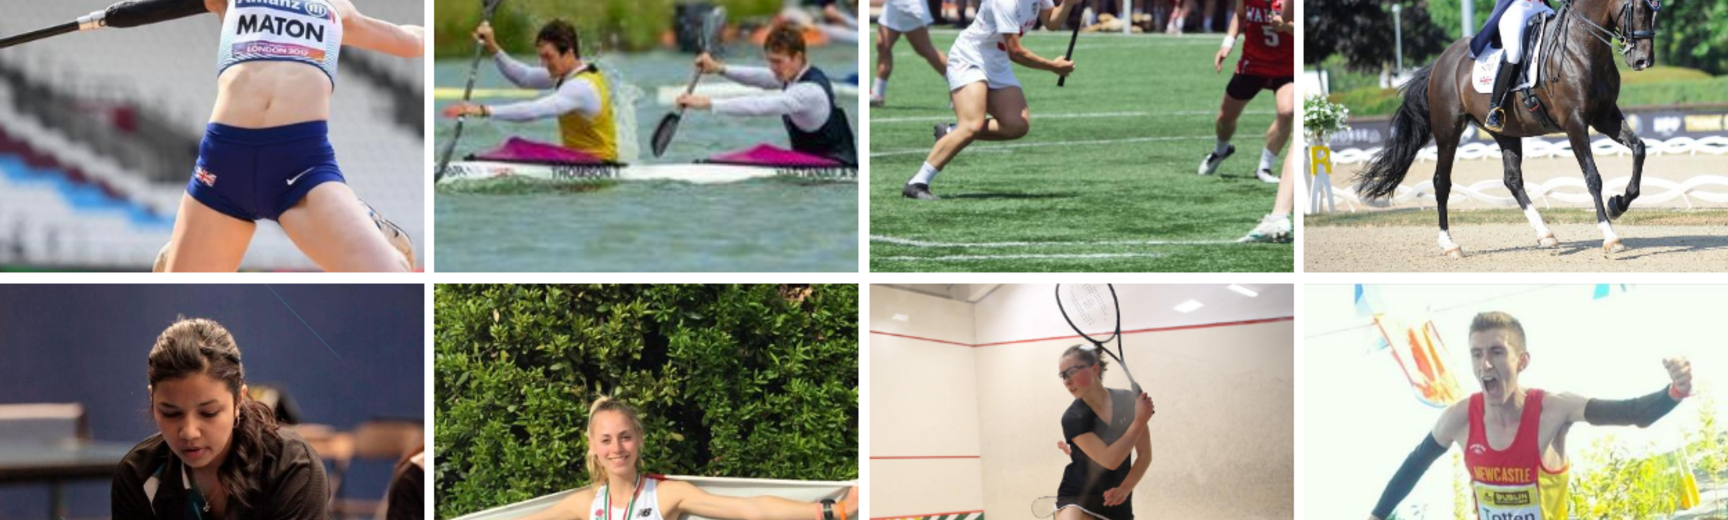 Eight images of performance athletes from Oxford University